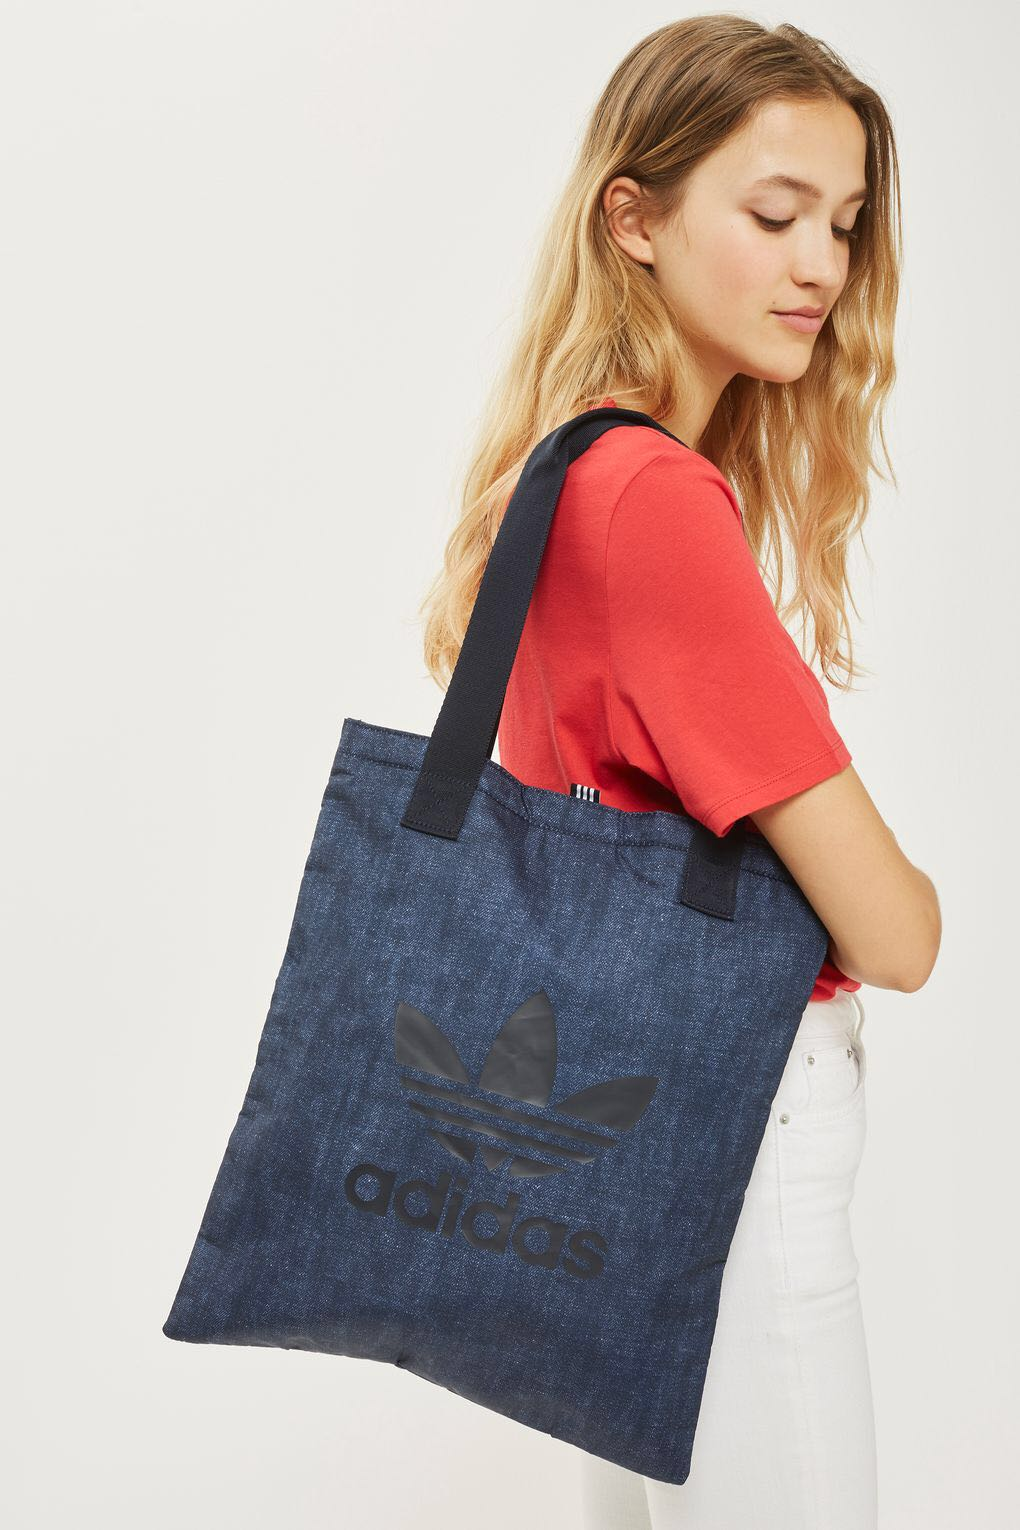 Adidas Originals Tote Bag Denim 18225185127d2